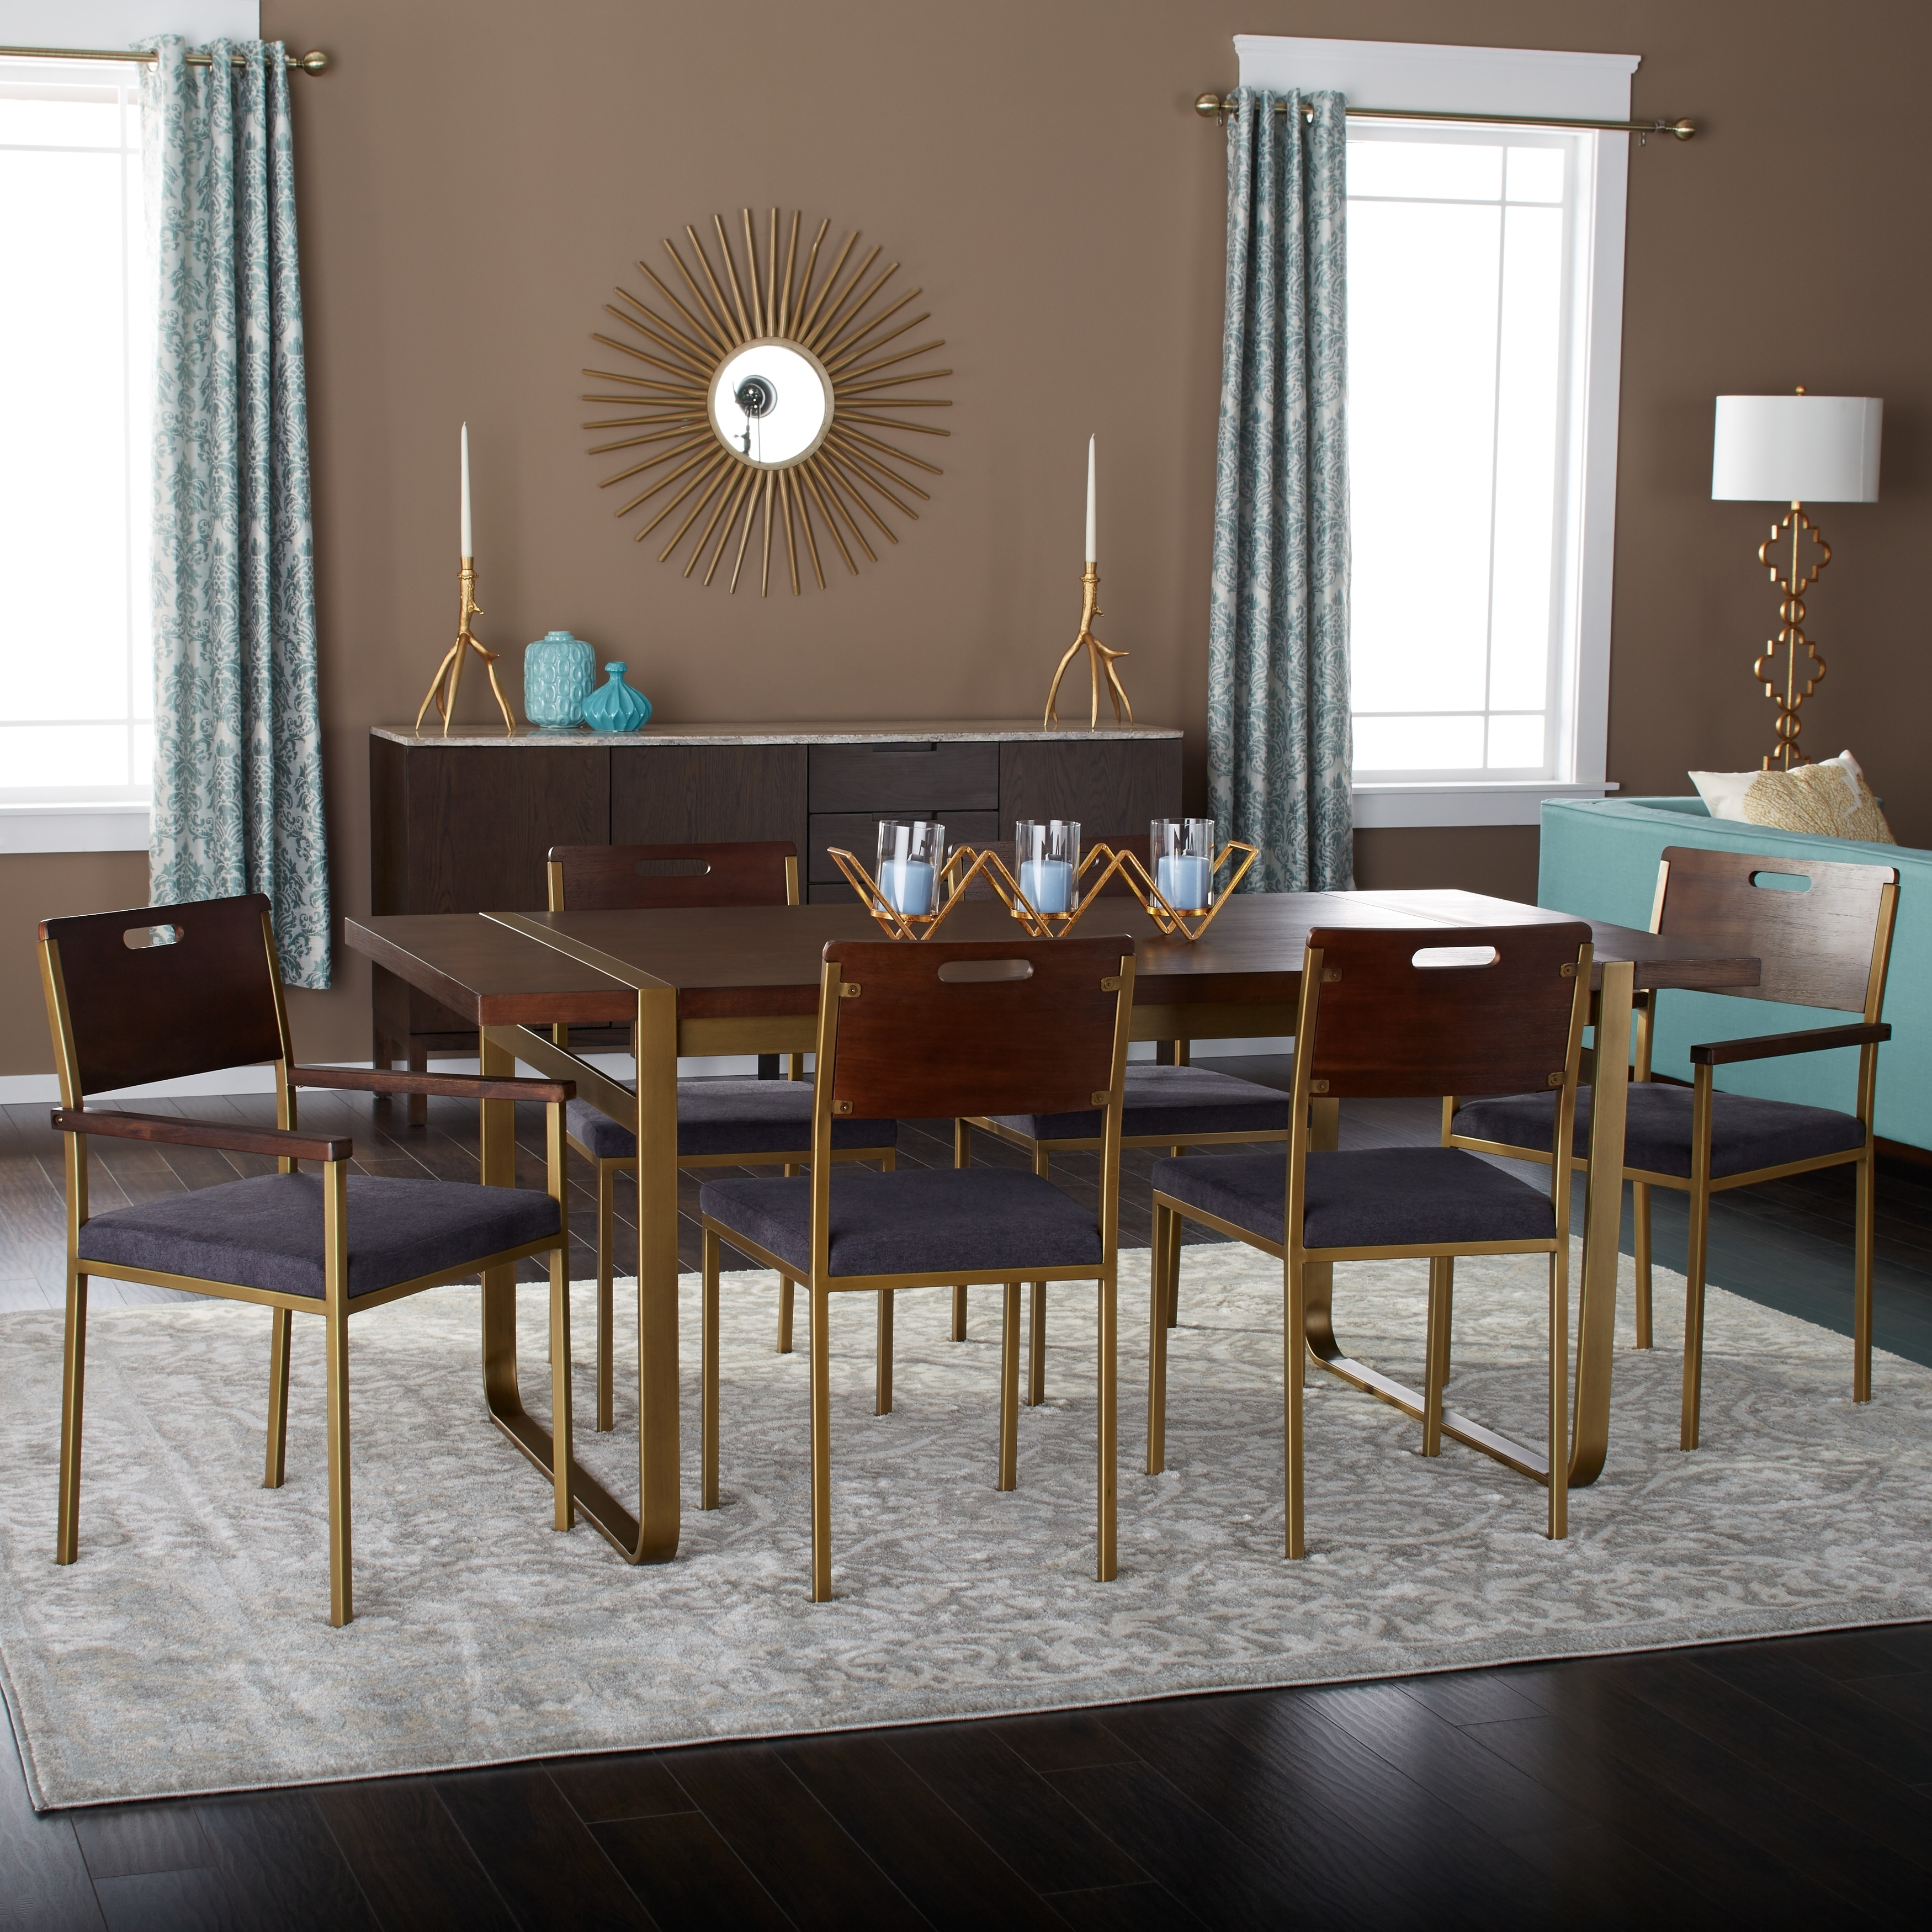 strick bolton tanner inch piece gold accent dining set table cabinets with glass doors room essentials bedding mango wood rustic green coffee tile patio large garden umbrellas